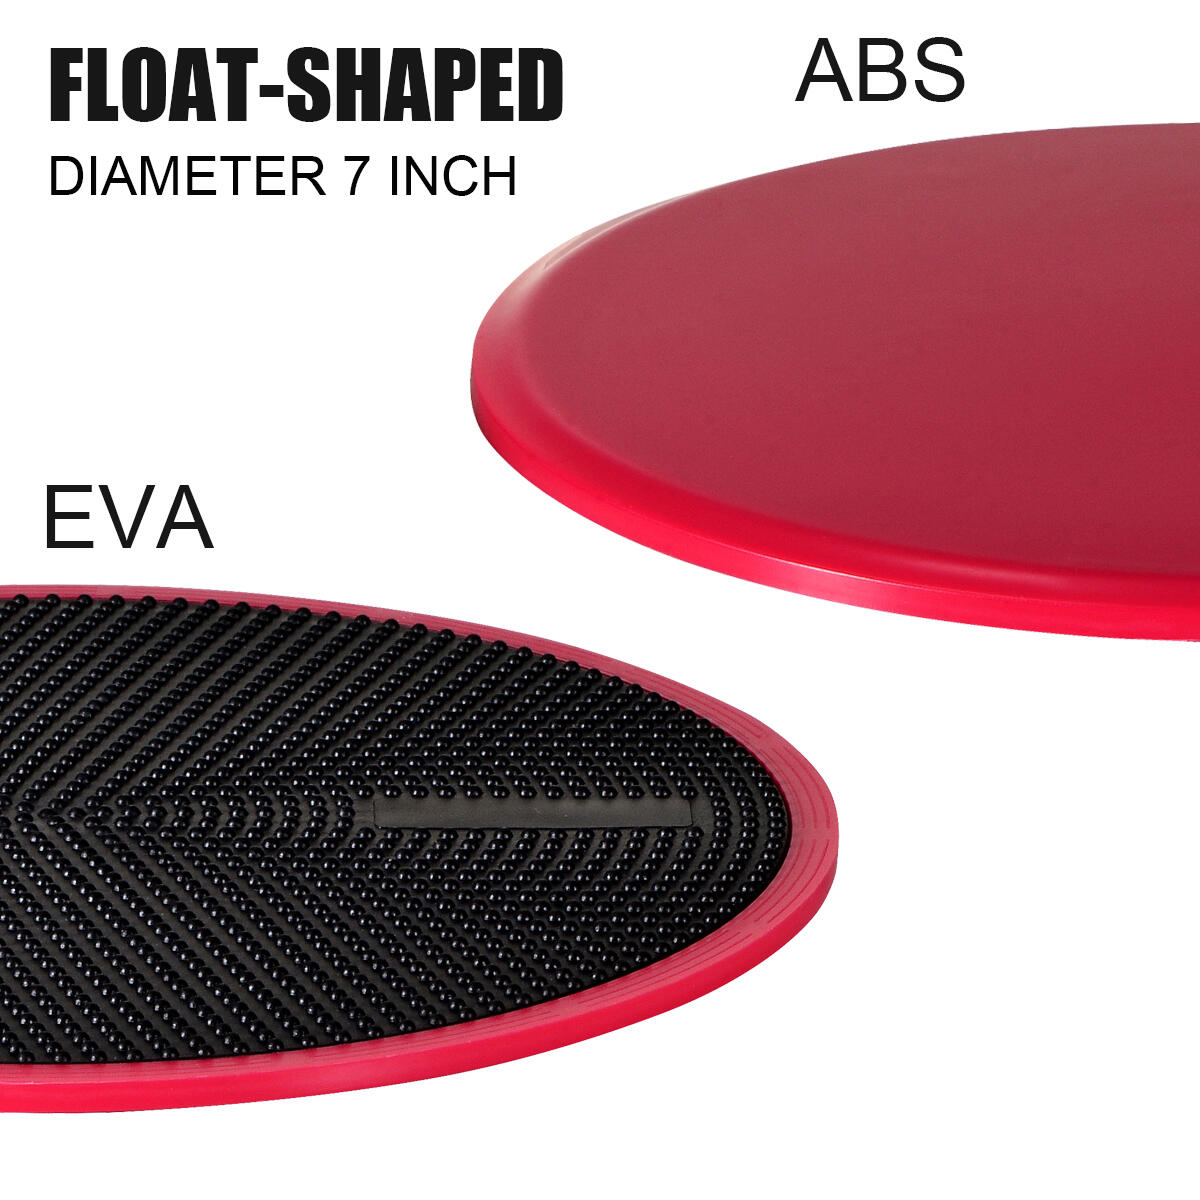 Exercise Sliders for Carpet or Hardwood [2020 Upgrade]-Dual Sided Core Sliders for Ab Workouts-Powerful and Portable Fitness Gliders Discs for Women/Man at Home or Gym (2Pack)